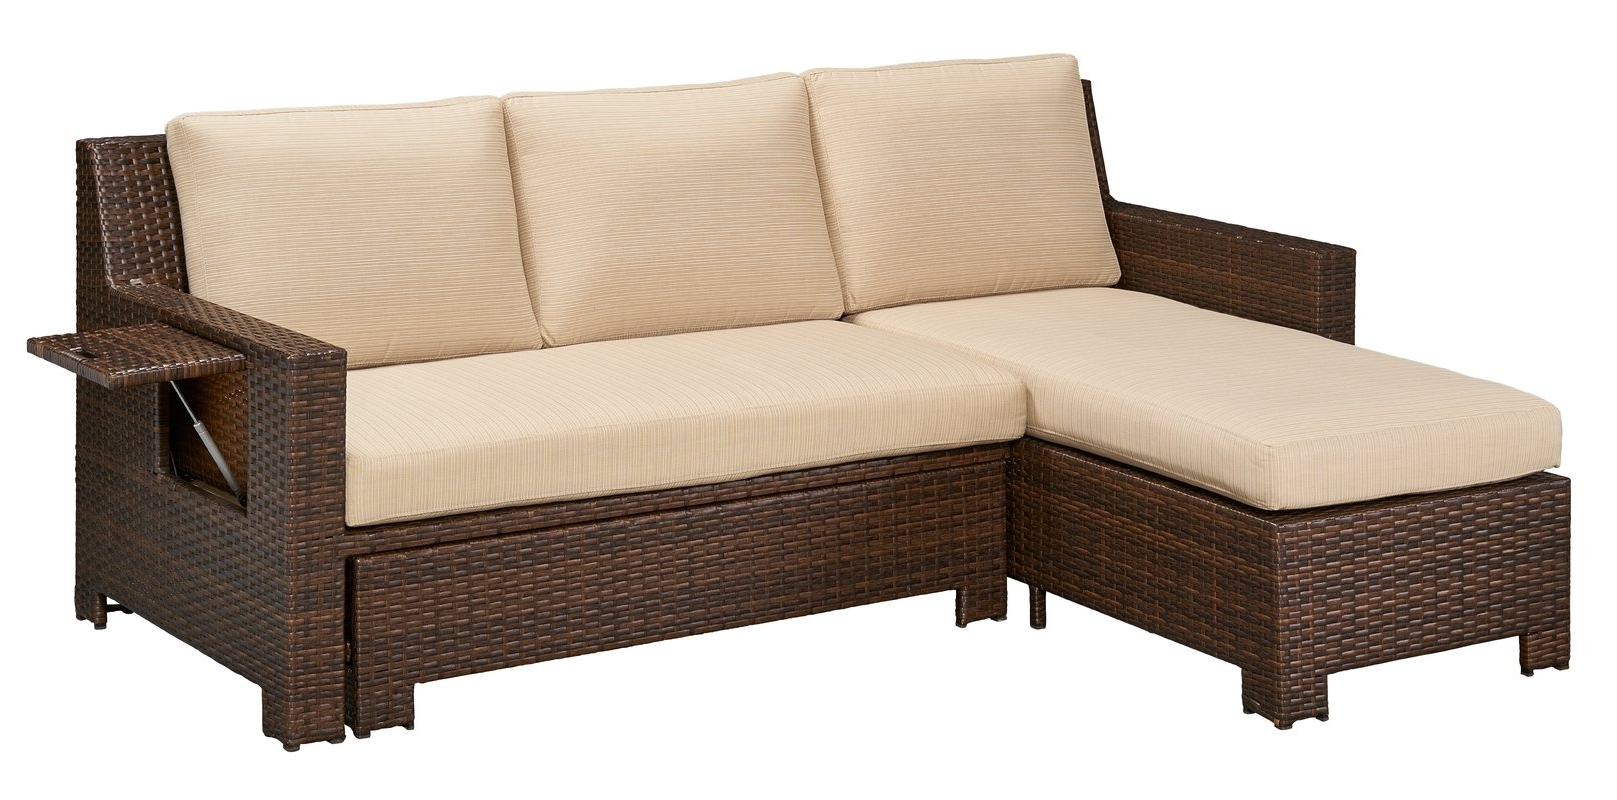 Convertible Sectional Sofas Throughout 2019 Darby Home Co Ferndale Deck Convertible Sectional Sofa With (View 9 of 20)